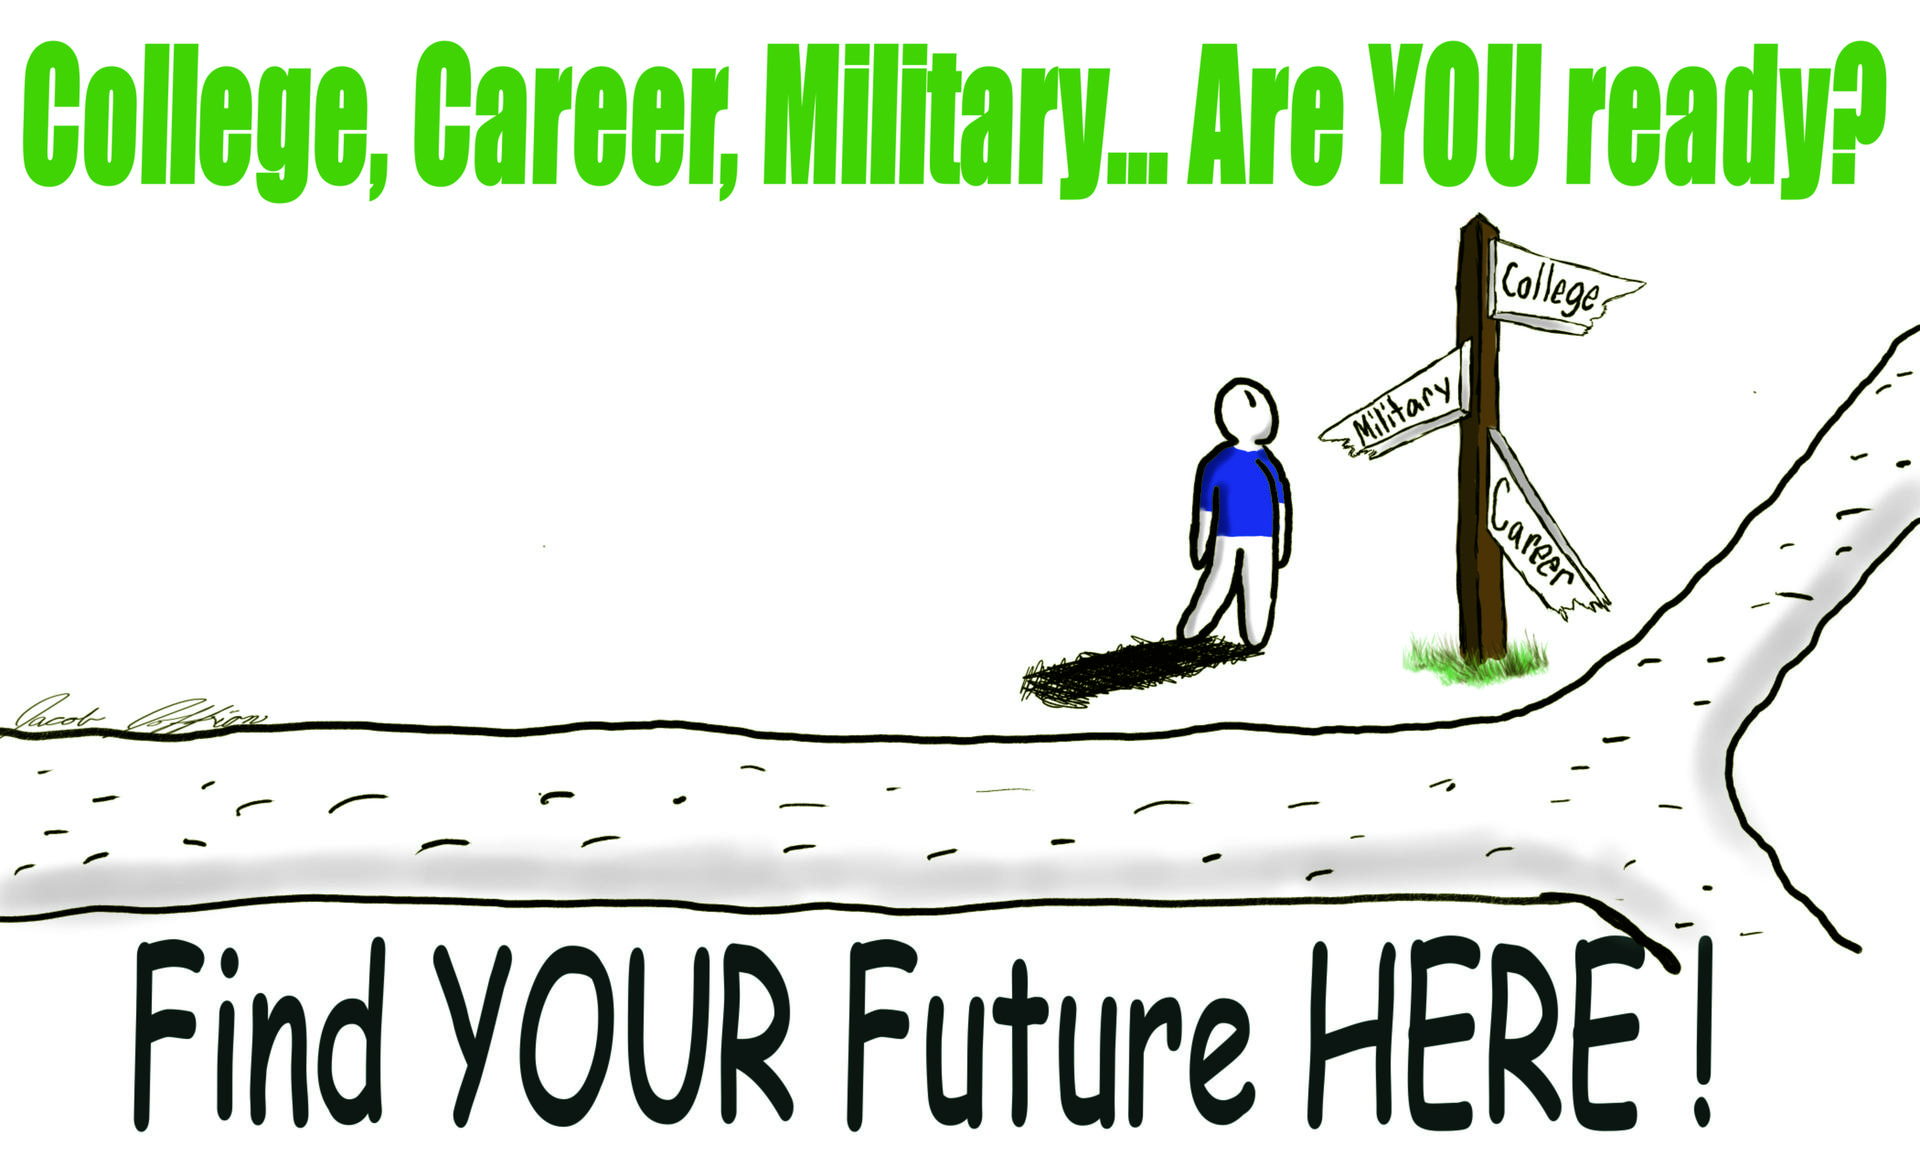 CCMR: Find Your Future Here